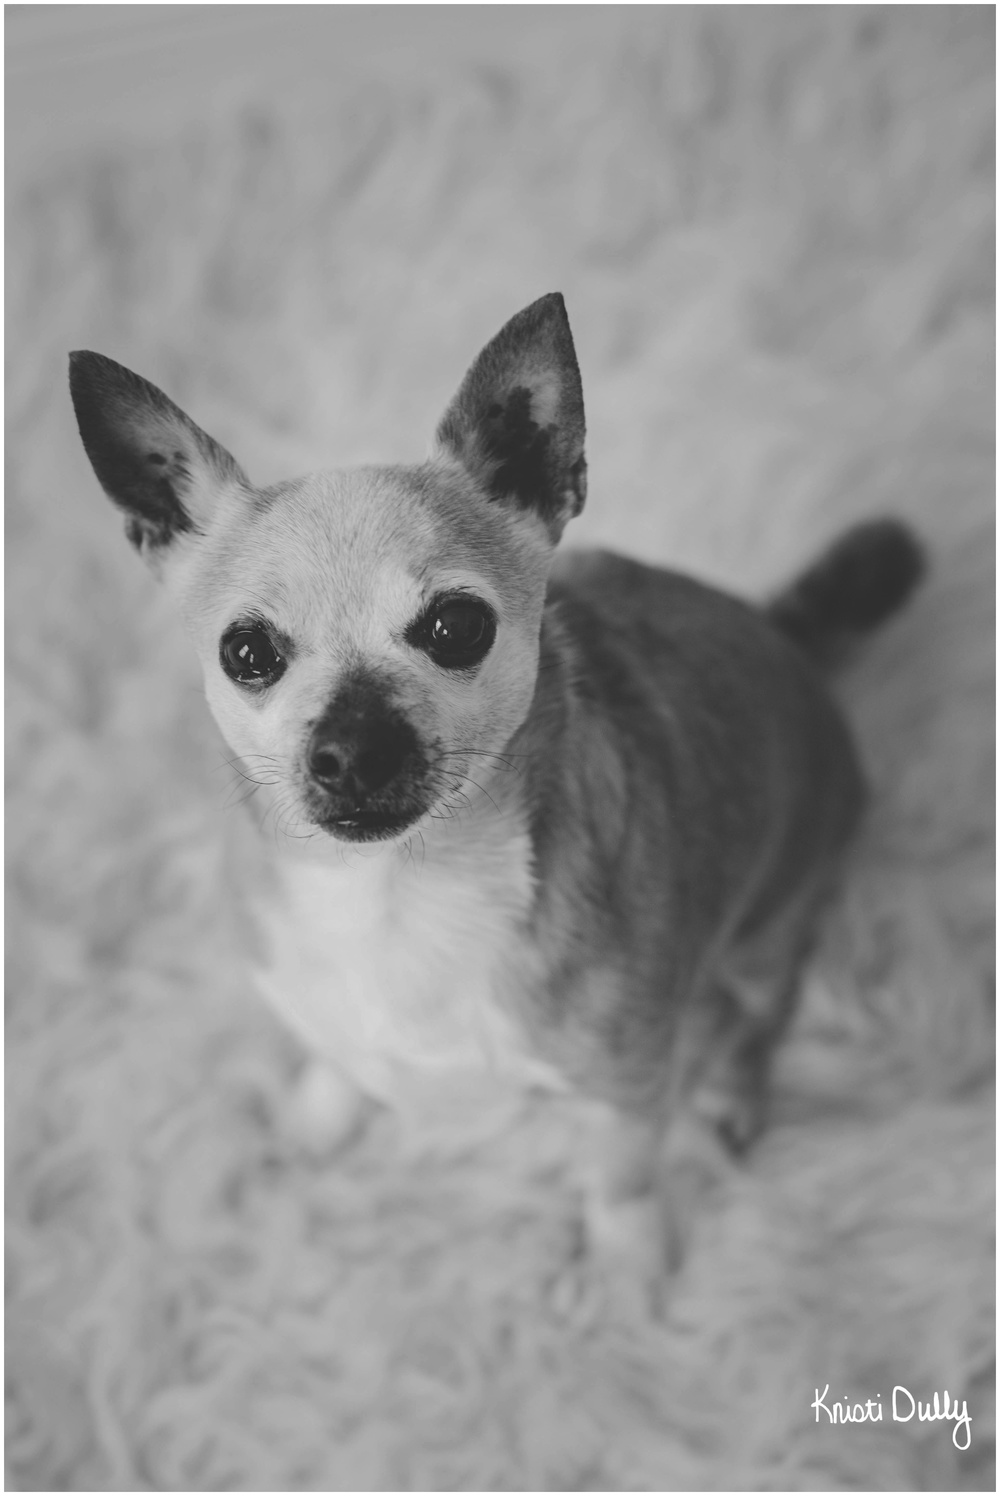 This is Bubbles. He is a 10 year old Chihuahua.